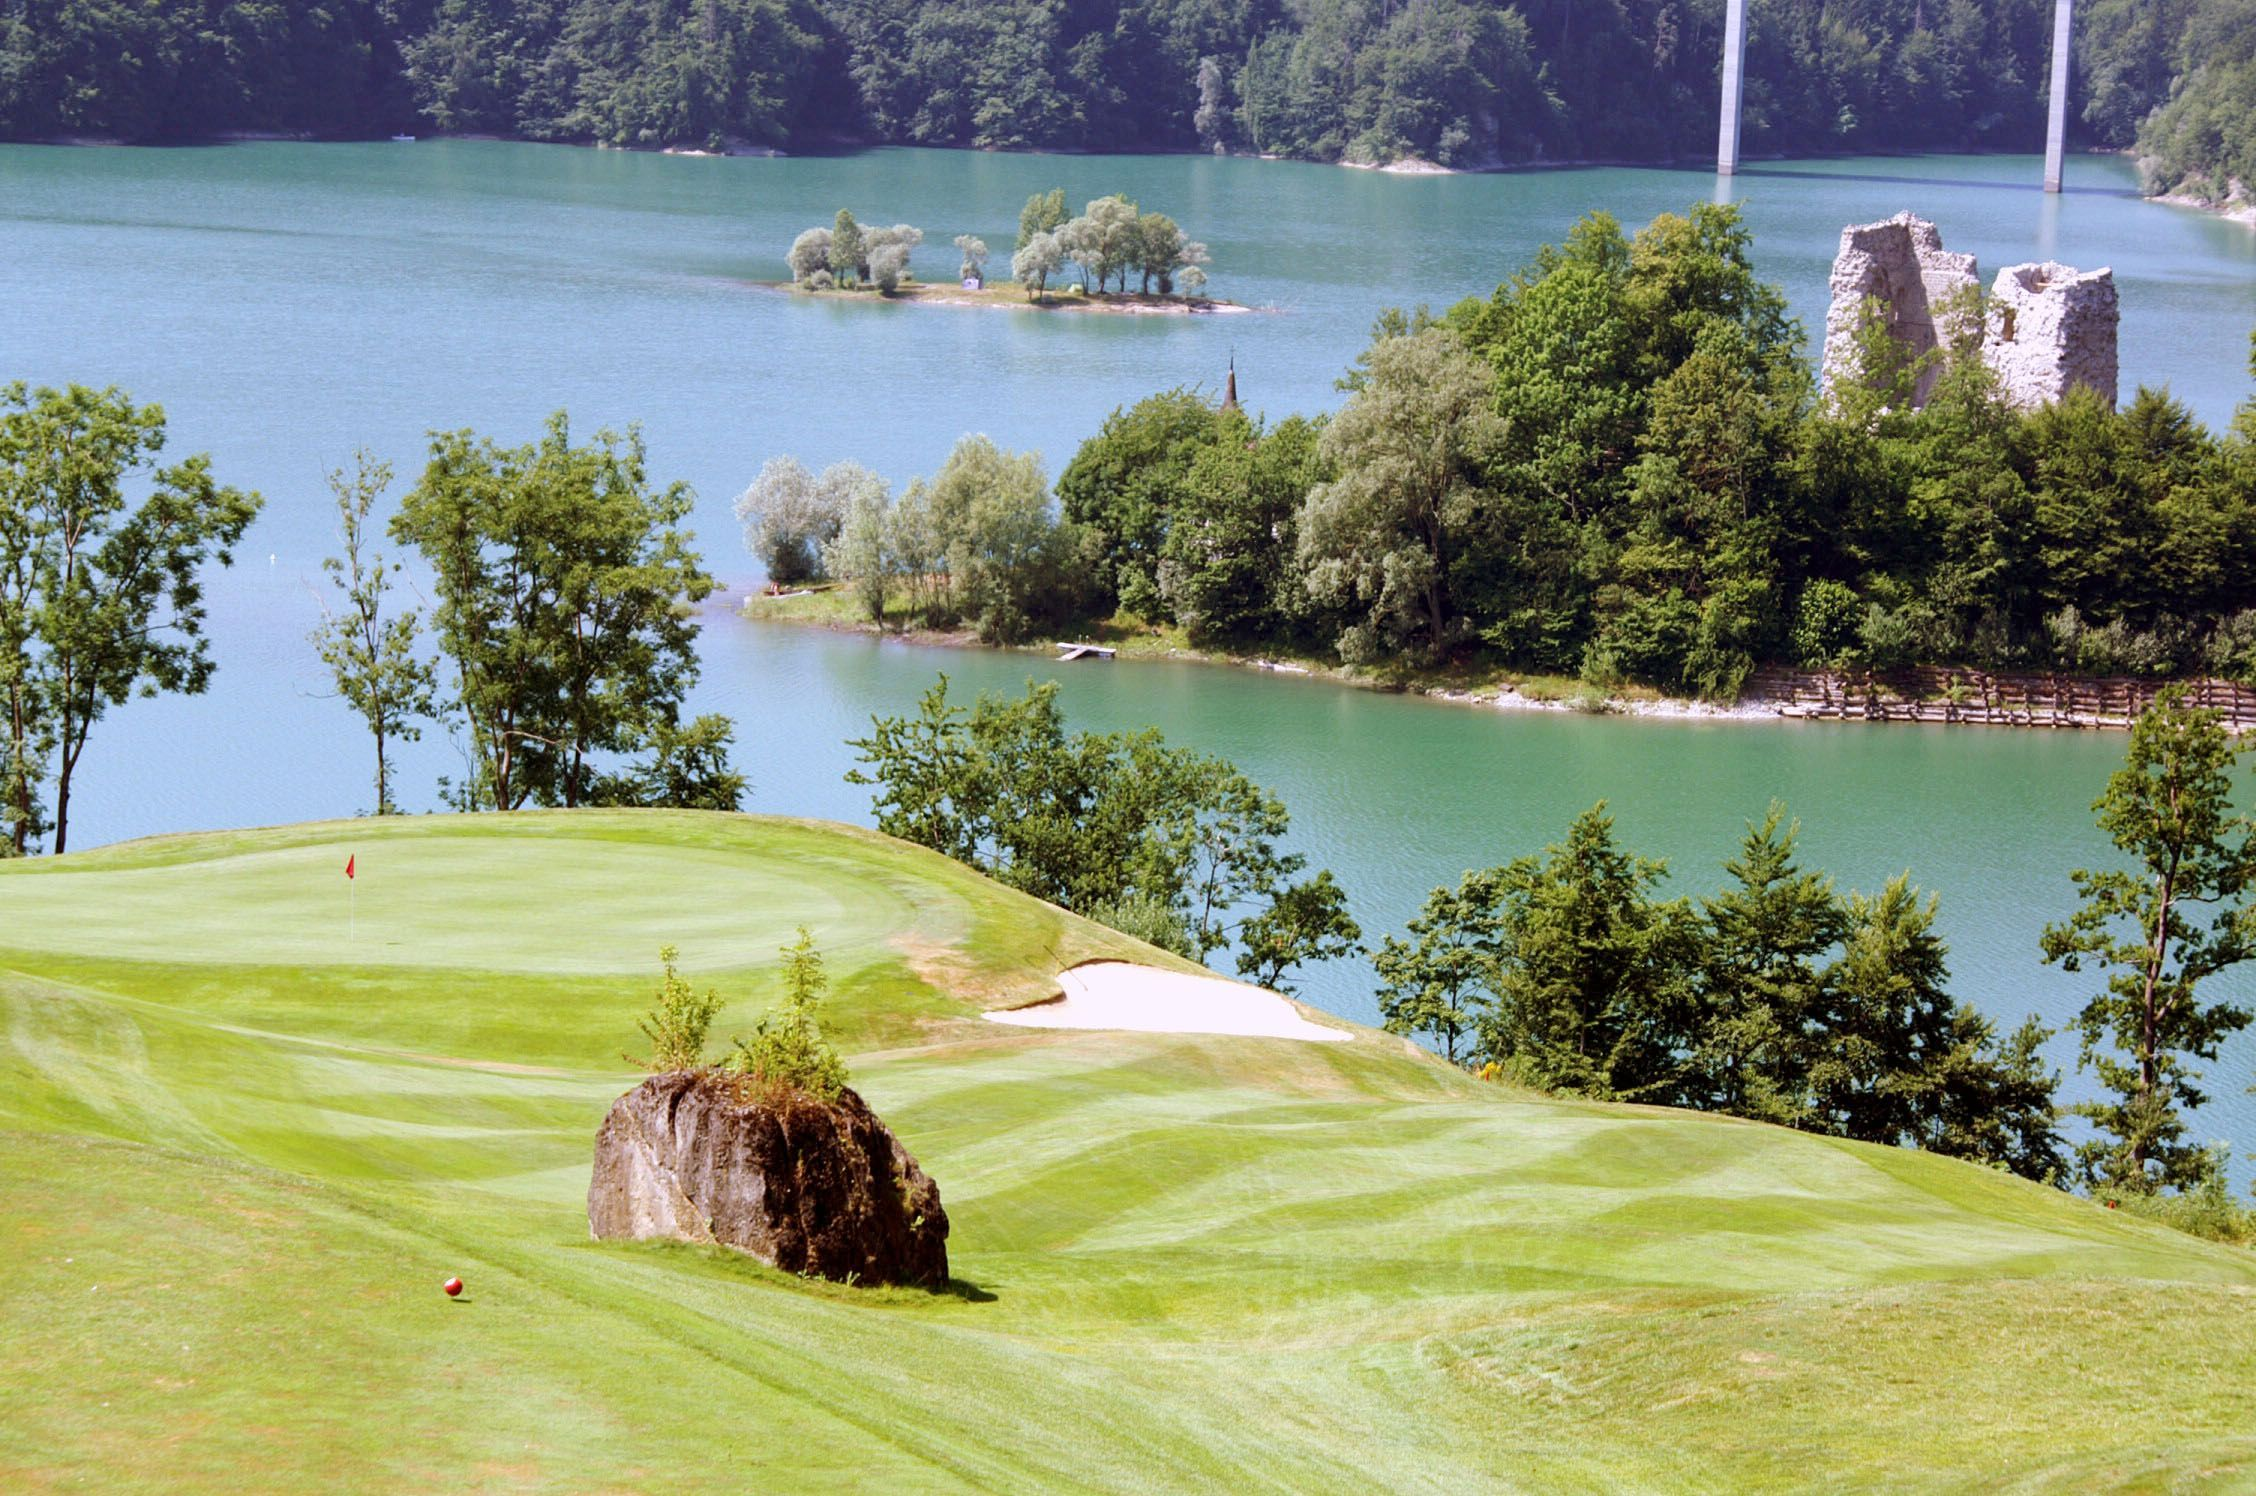 Golf Course Gruyere Switzerland Golfcourse Golf Courses Top Golf Courses Golf